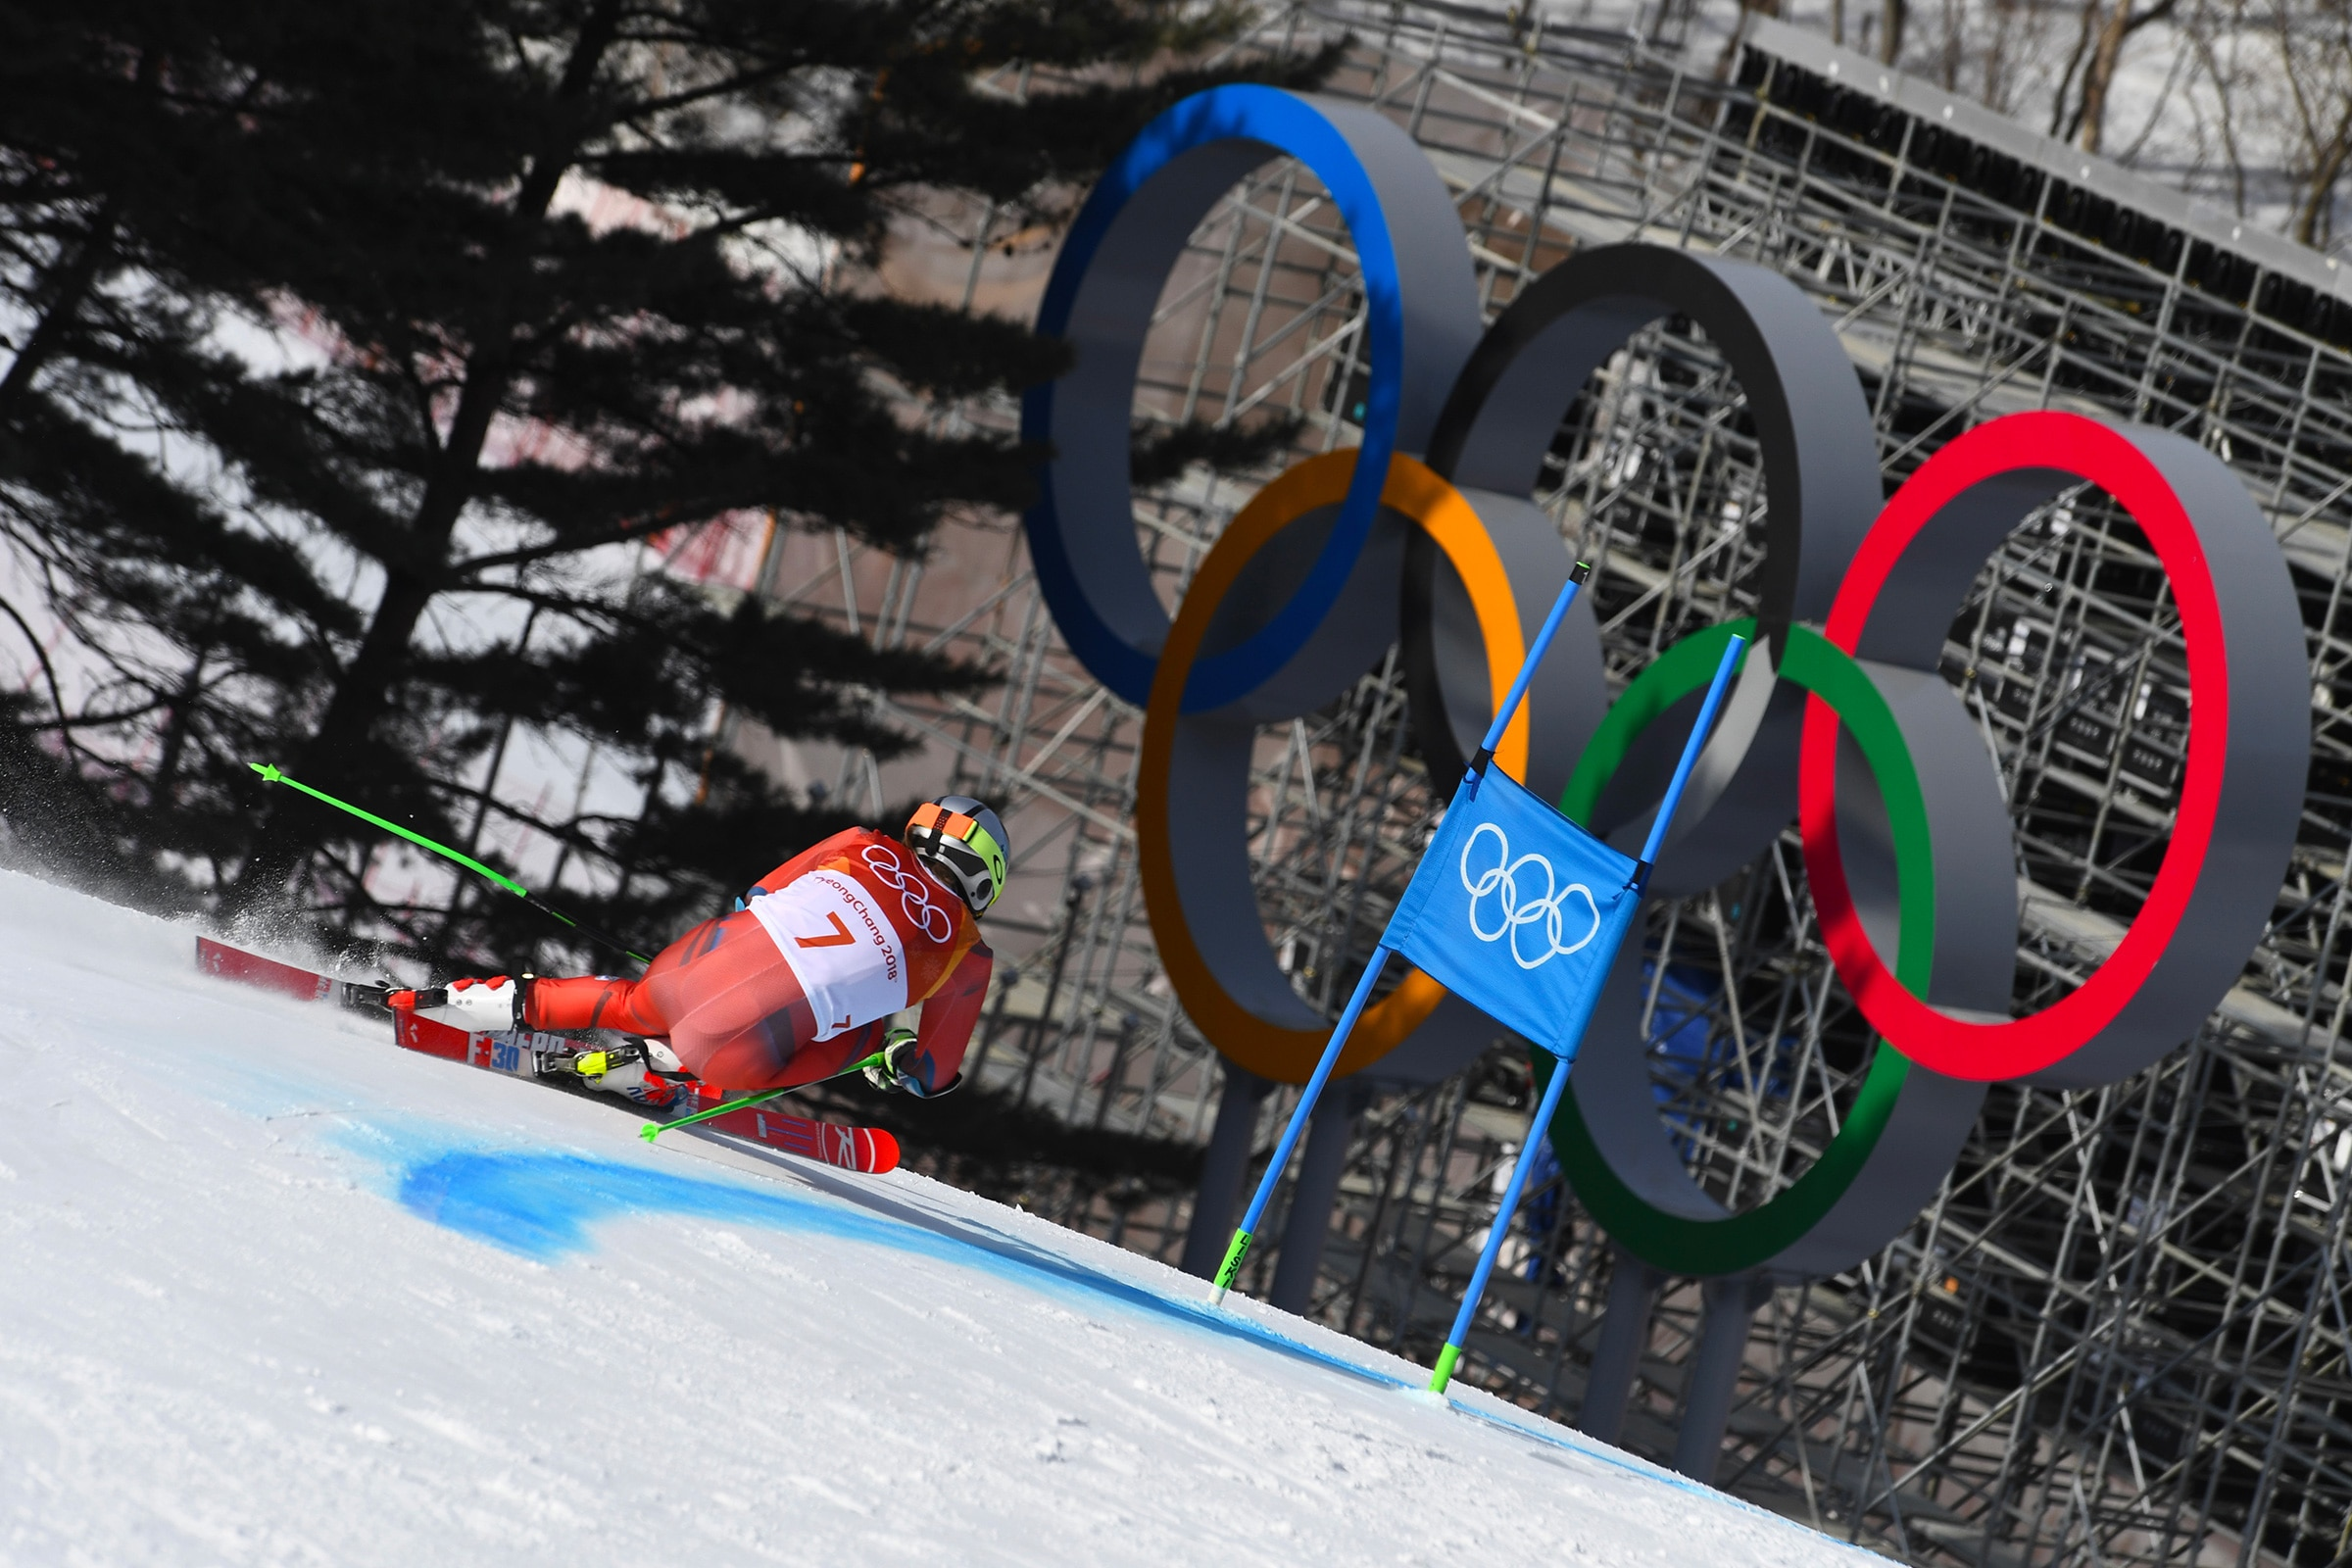 Alpine Skiing - Men's Giant Slalom